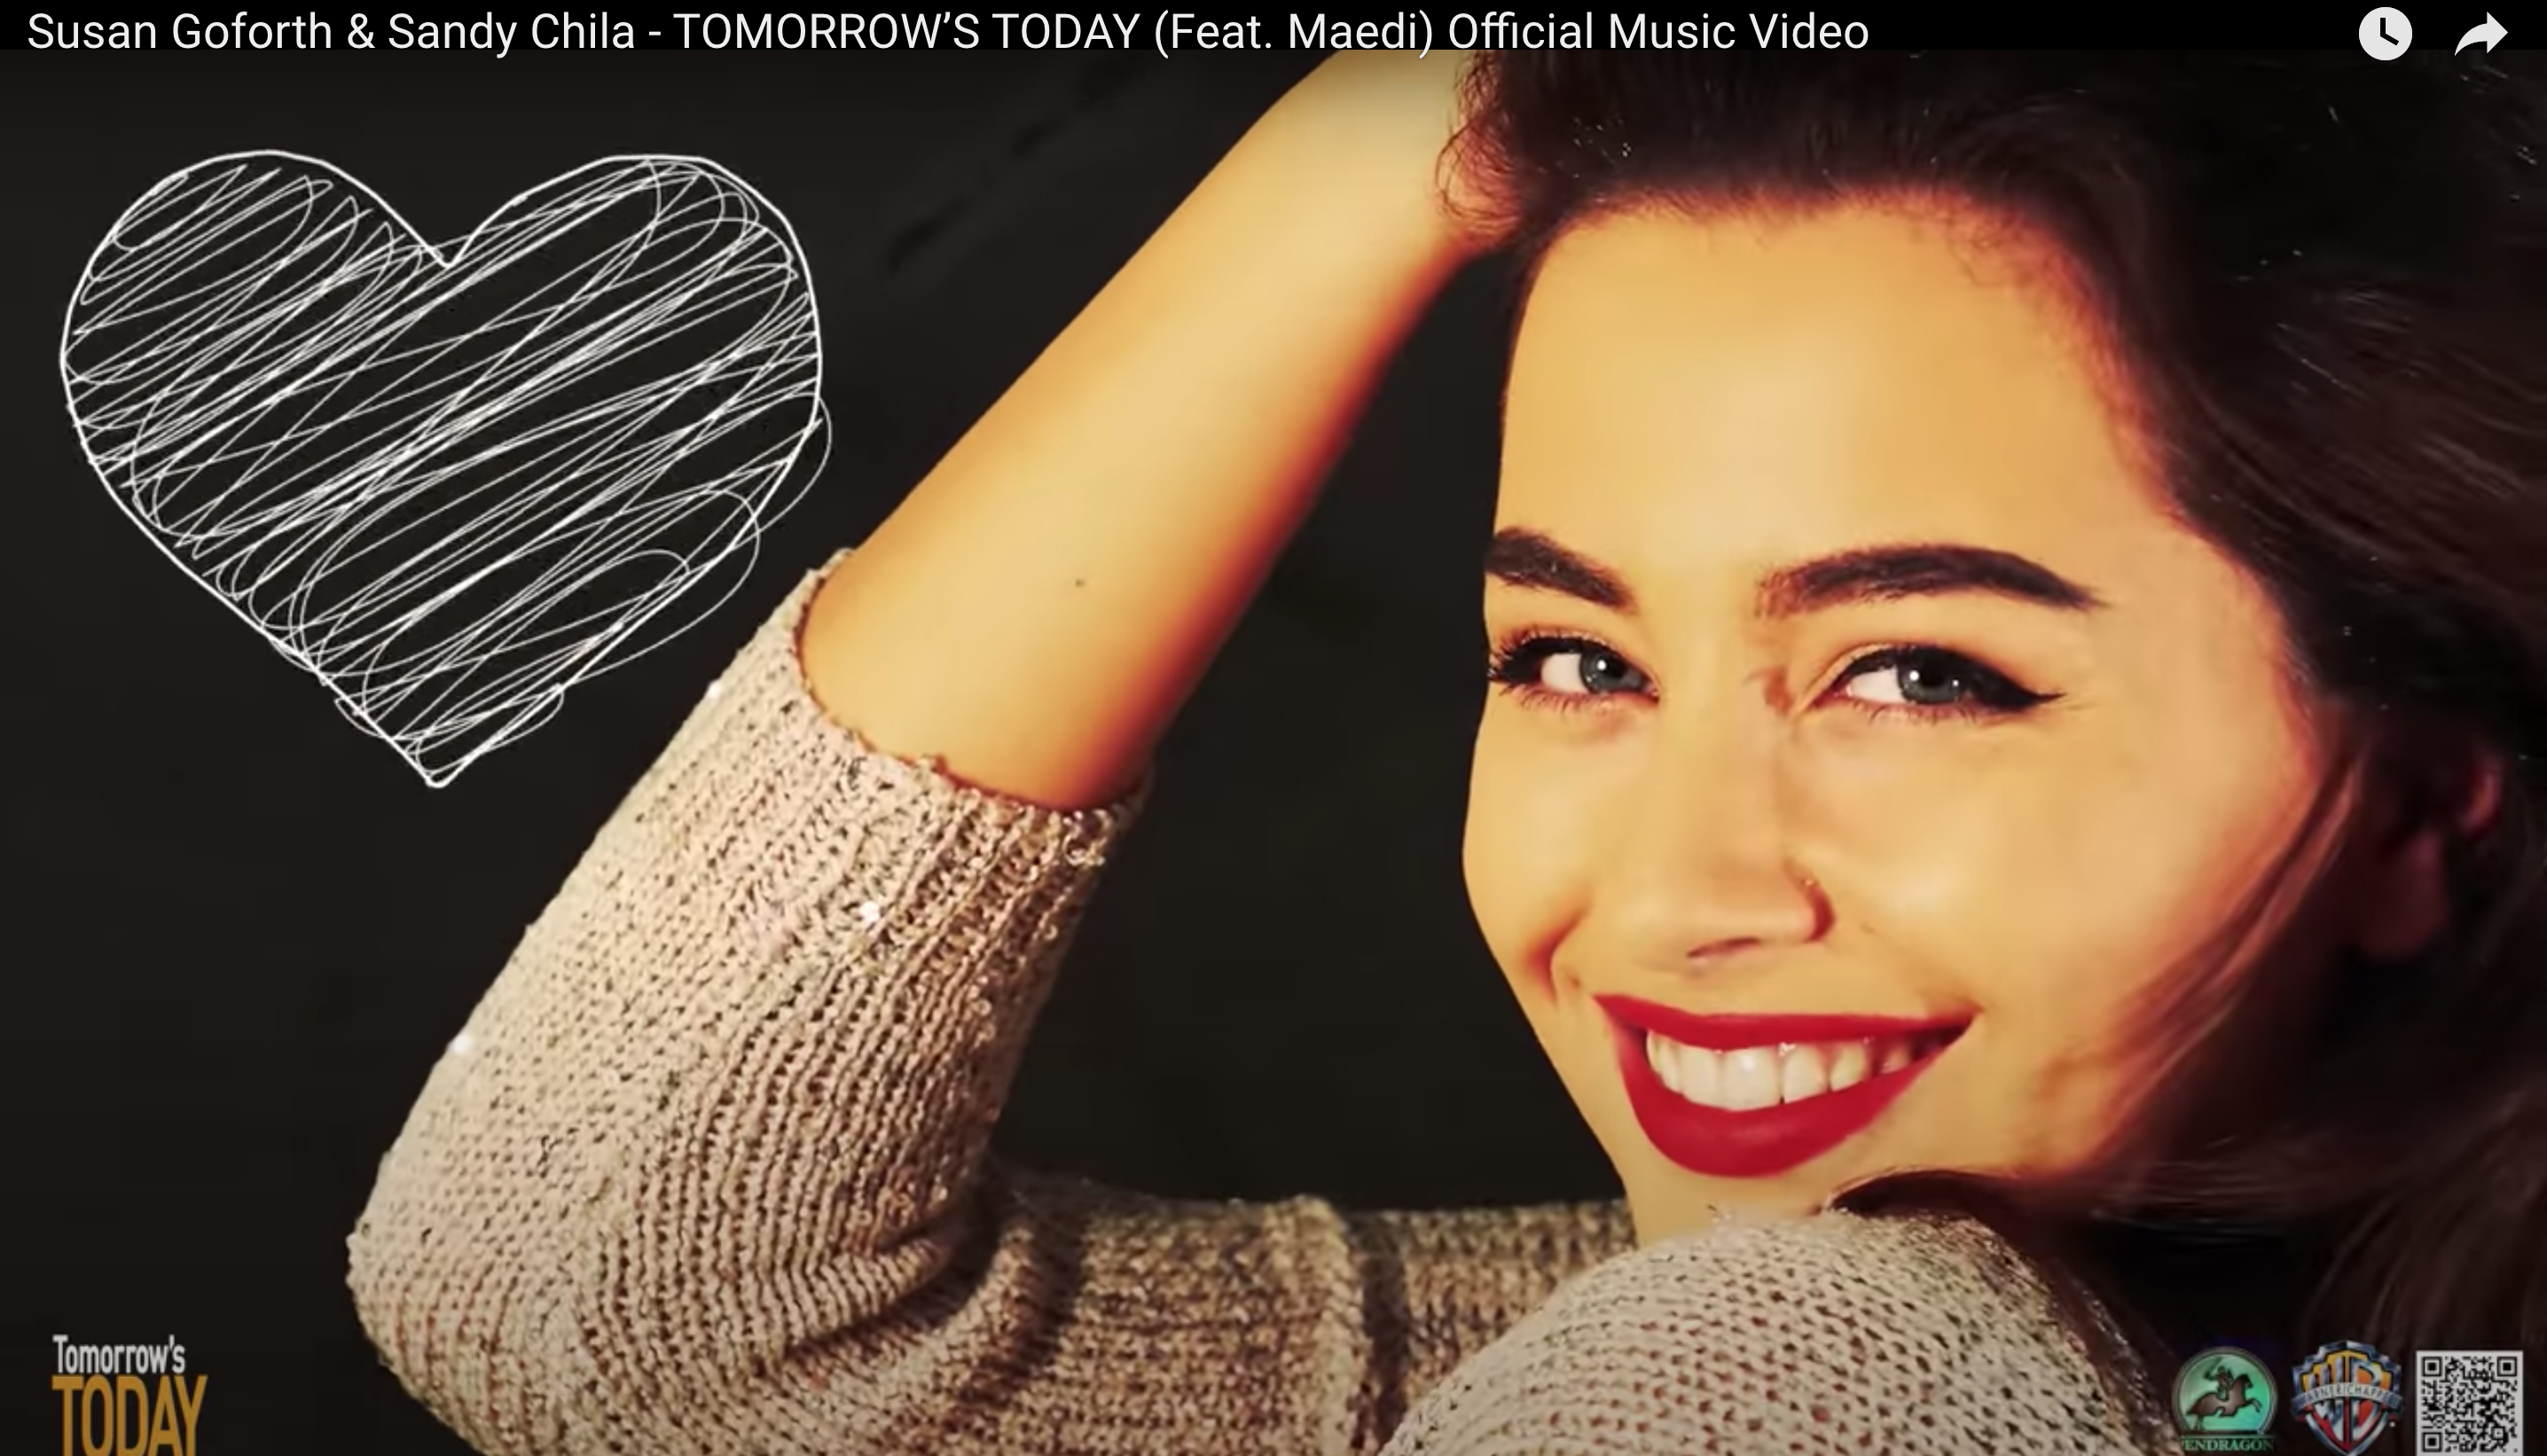 Tomorrow's Today song Official Music Video Released - Britney Spears Writer Alumni Sandy Chila, Susan Goforth and NBCSongland's Maedi Collaborate